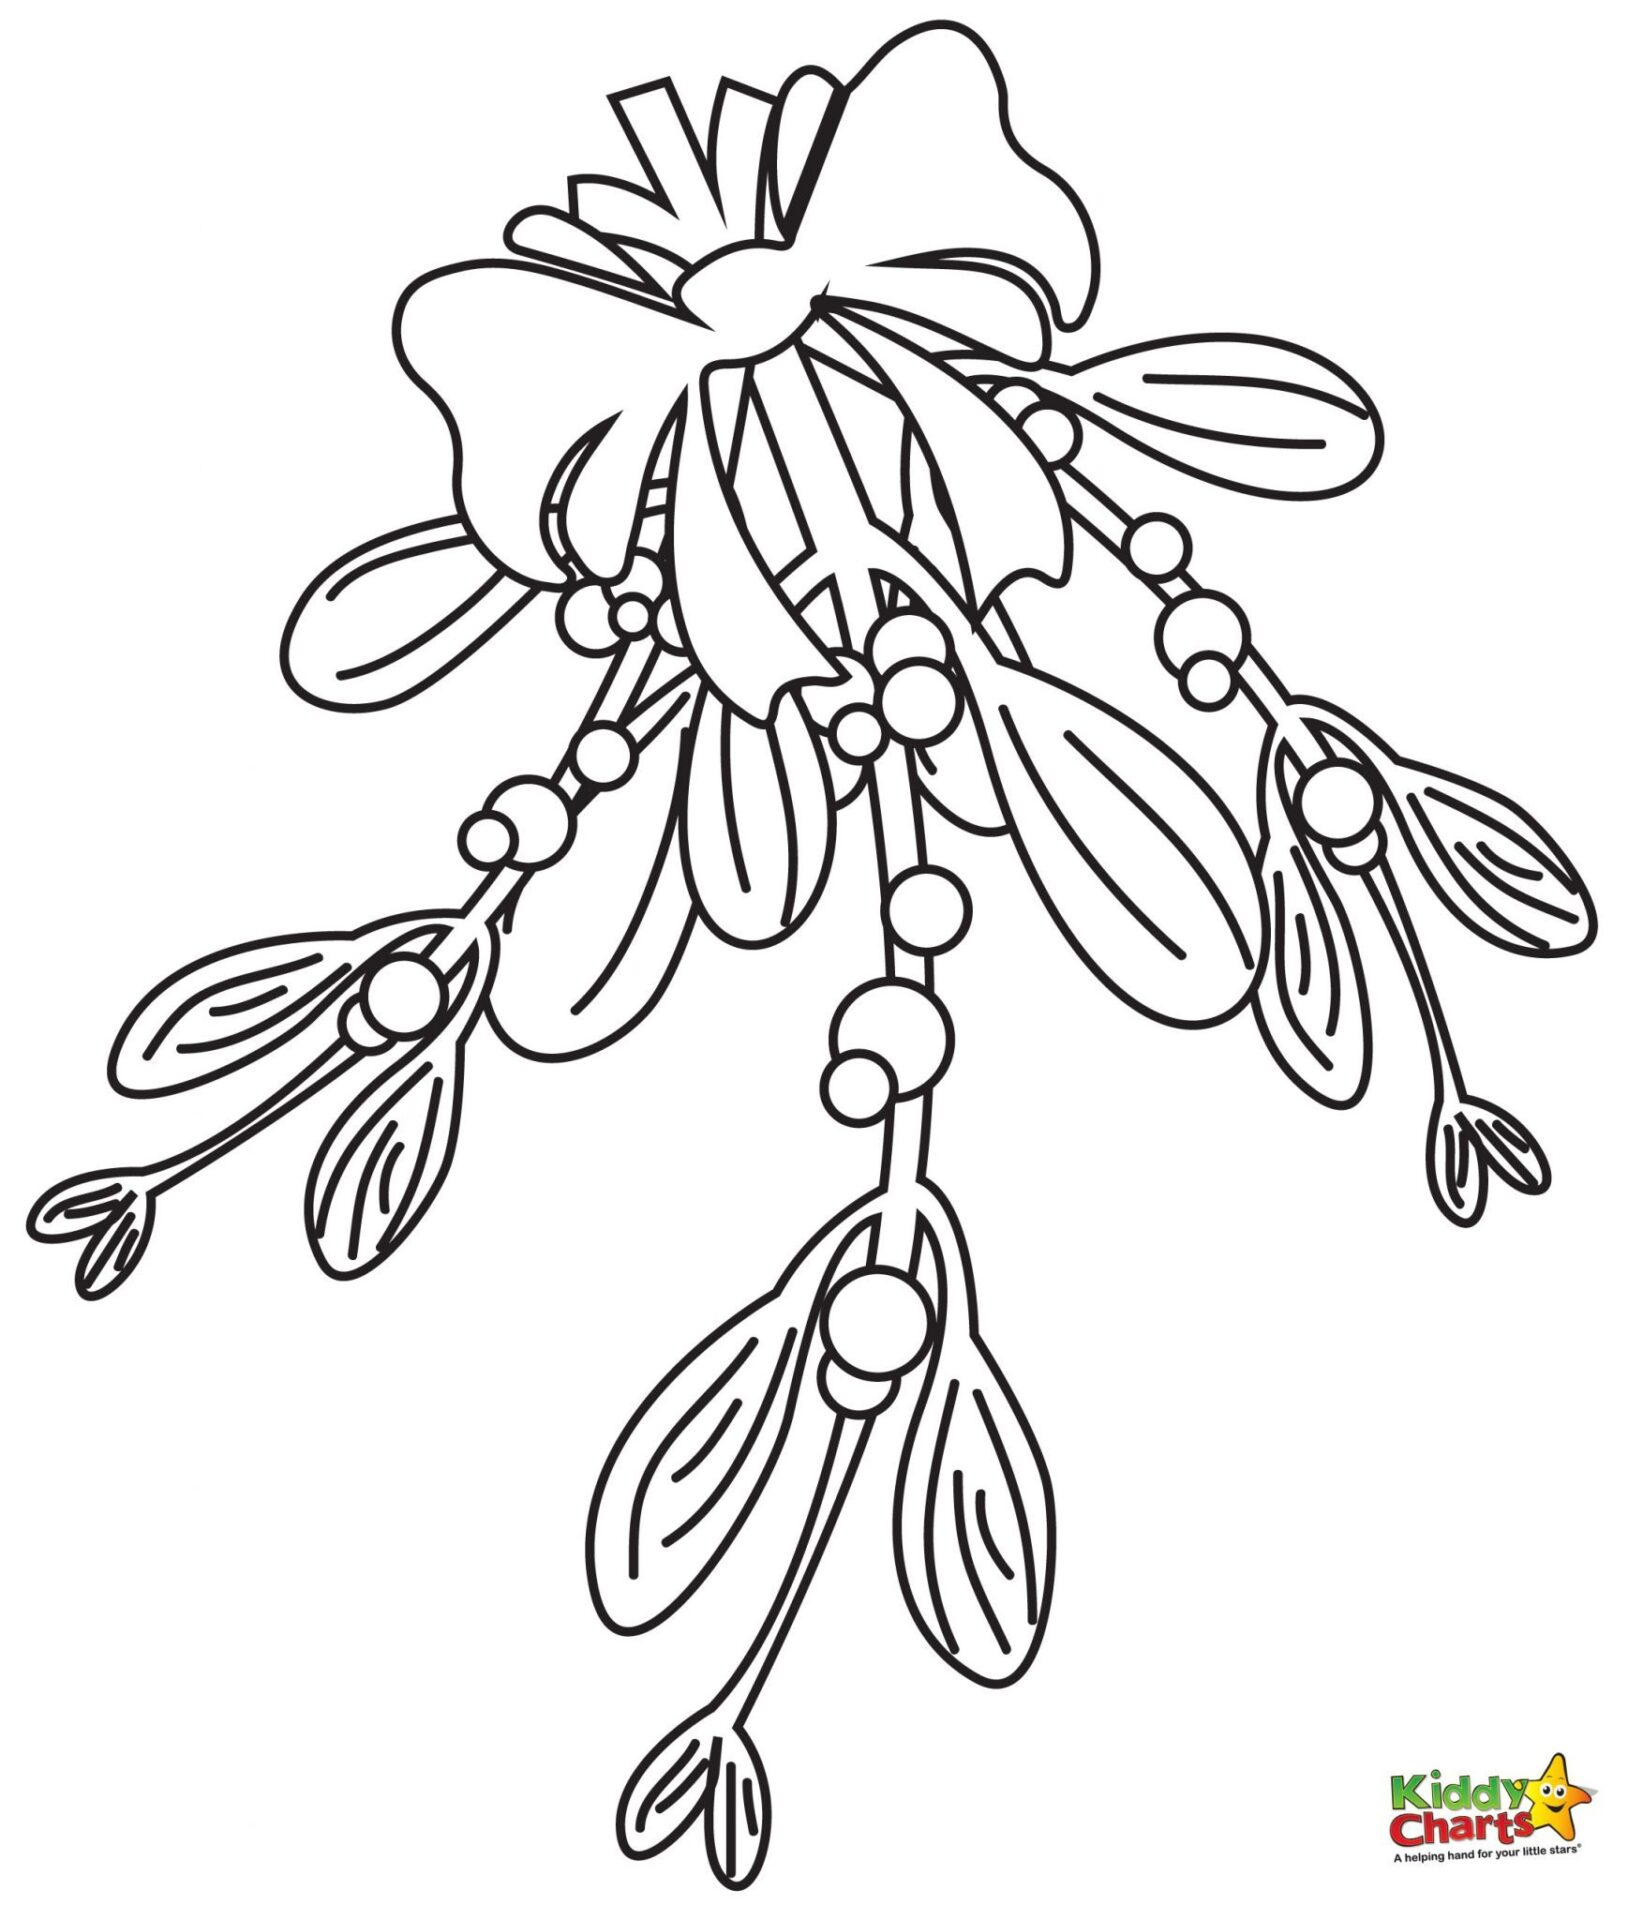 mistletoe coloring pages - photo#7